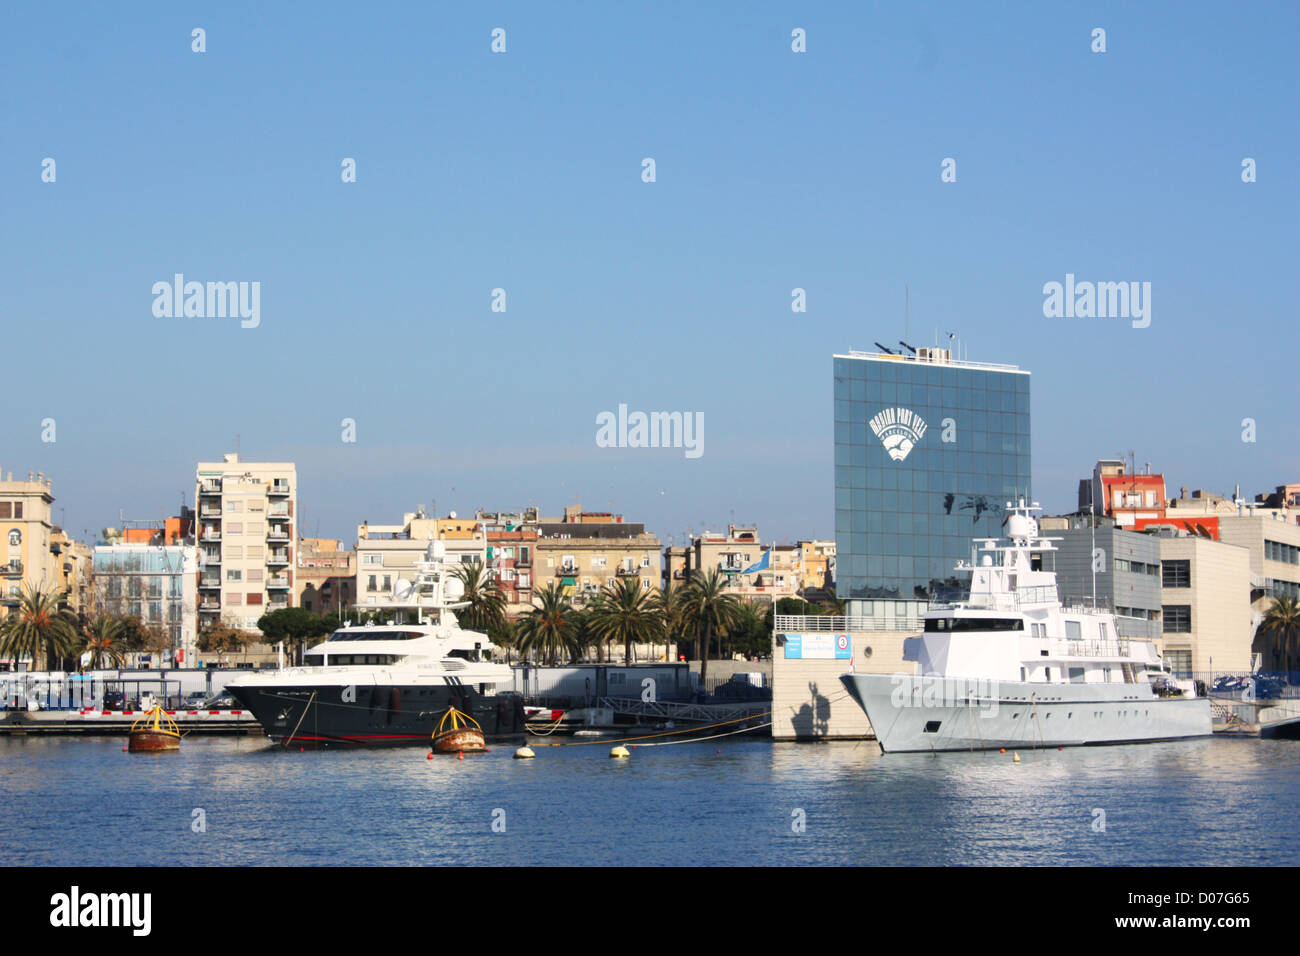 Boats and buildings in Barcelona city, Spain Stock Photo